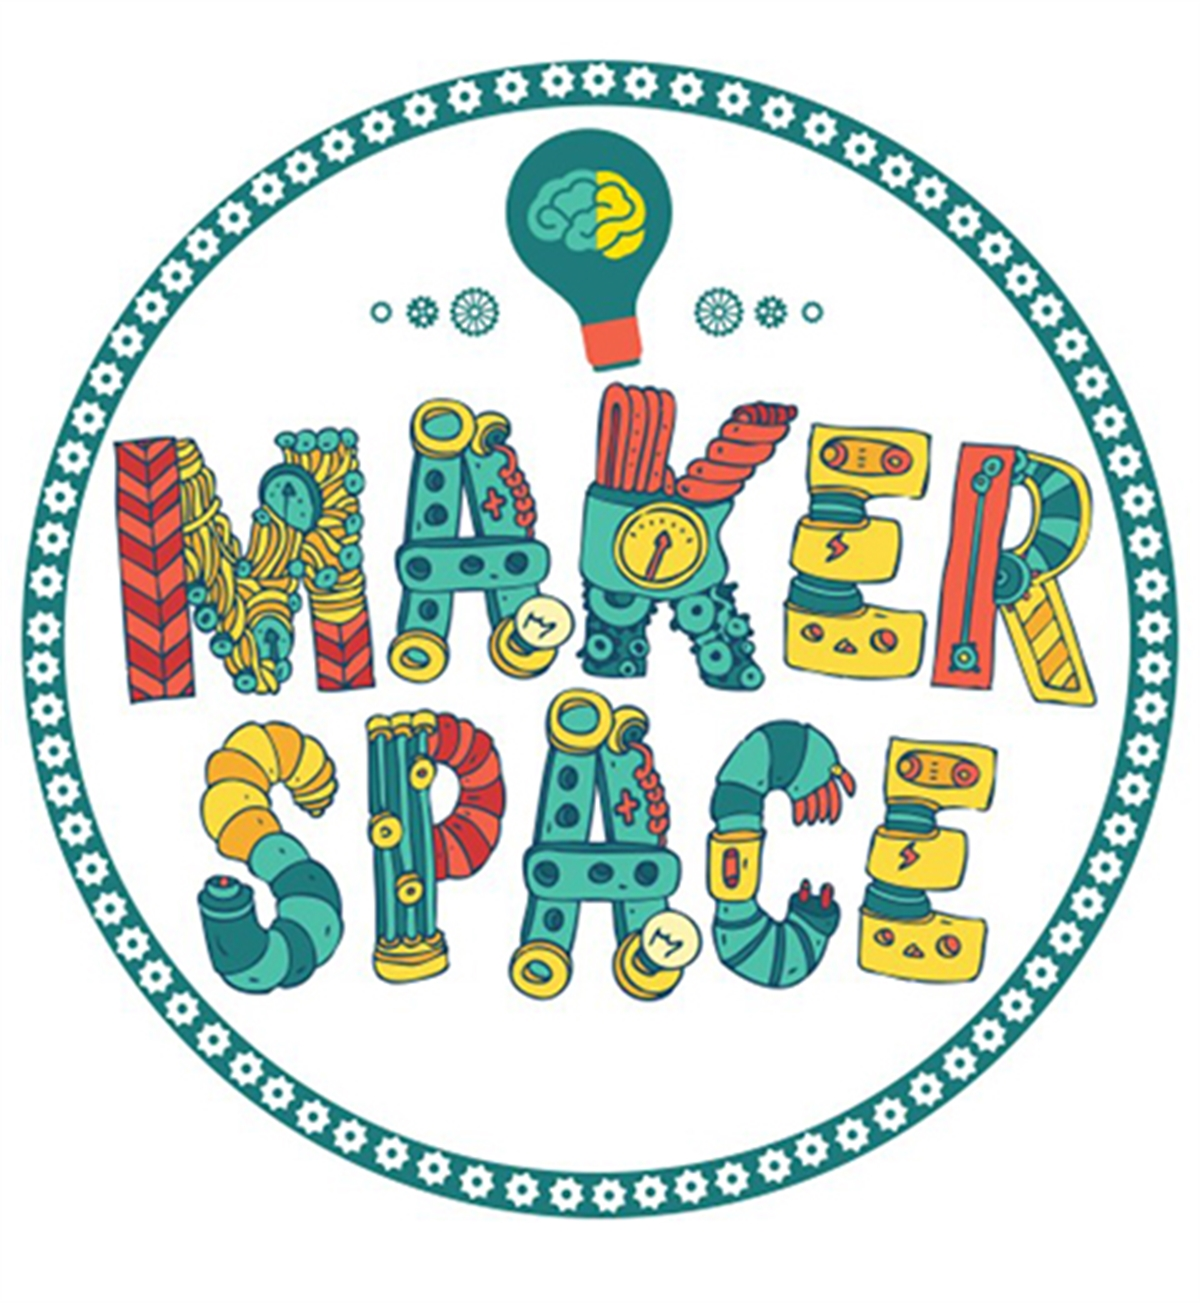 MiY Makerspace (Make It Yourself)